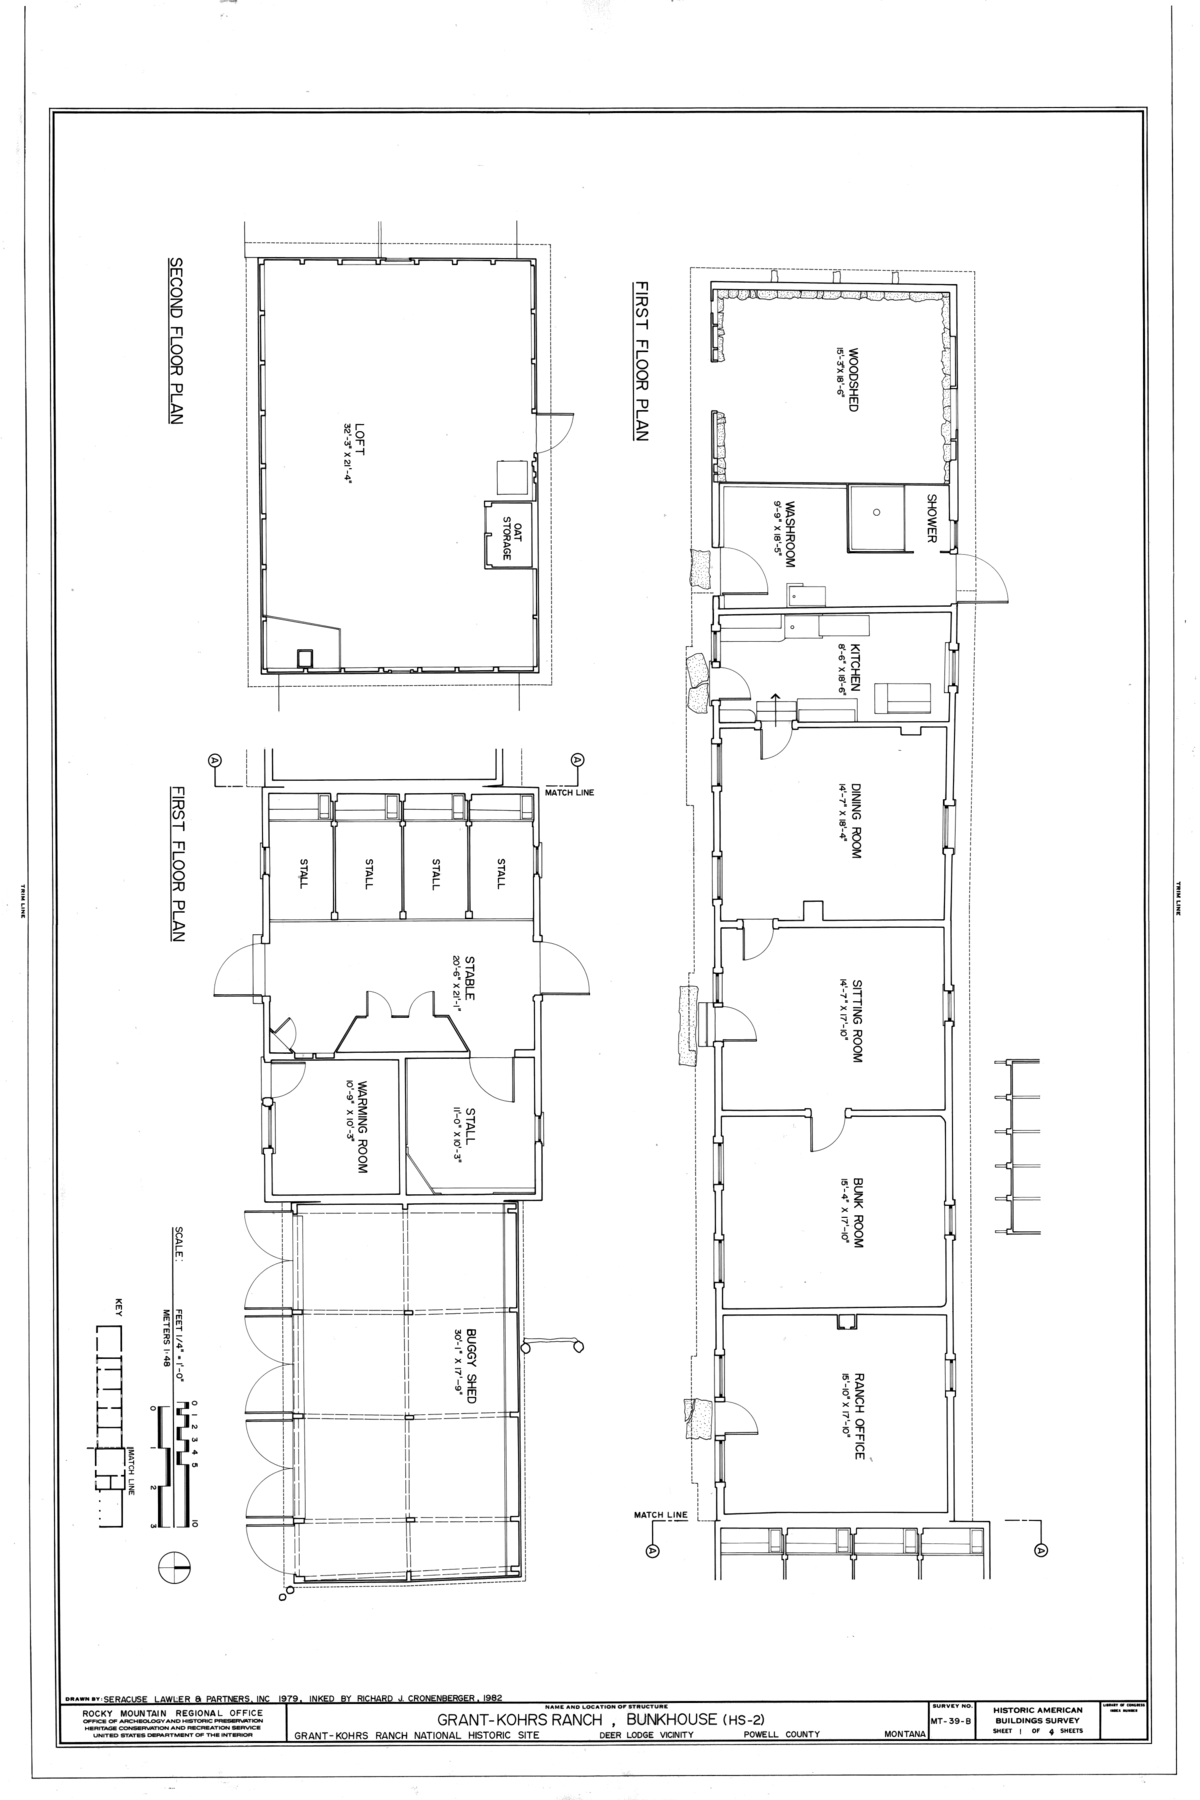 File:First Floor Plan and Second Floor Plan - Grant-Kohrs ... on hunting cabins building plans, modular ranch floor plans, ranch home building plans, ranch style floor plans 1700 to 1800 sq ft, ranch duplex plans, ranch house plans cottage, ranch shed plans, open ranch floor plans, loft bed design plans, ranch house on land, ranch cabins plans, small pole barn plans, small house plans, ranch apartment plans, rustic cabin plans, prow ranch home plans, ranch floor plans with loft, bill clark homes floor plans, ranch farmhouse plans, ranch barn plans,